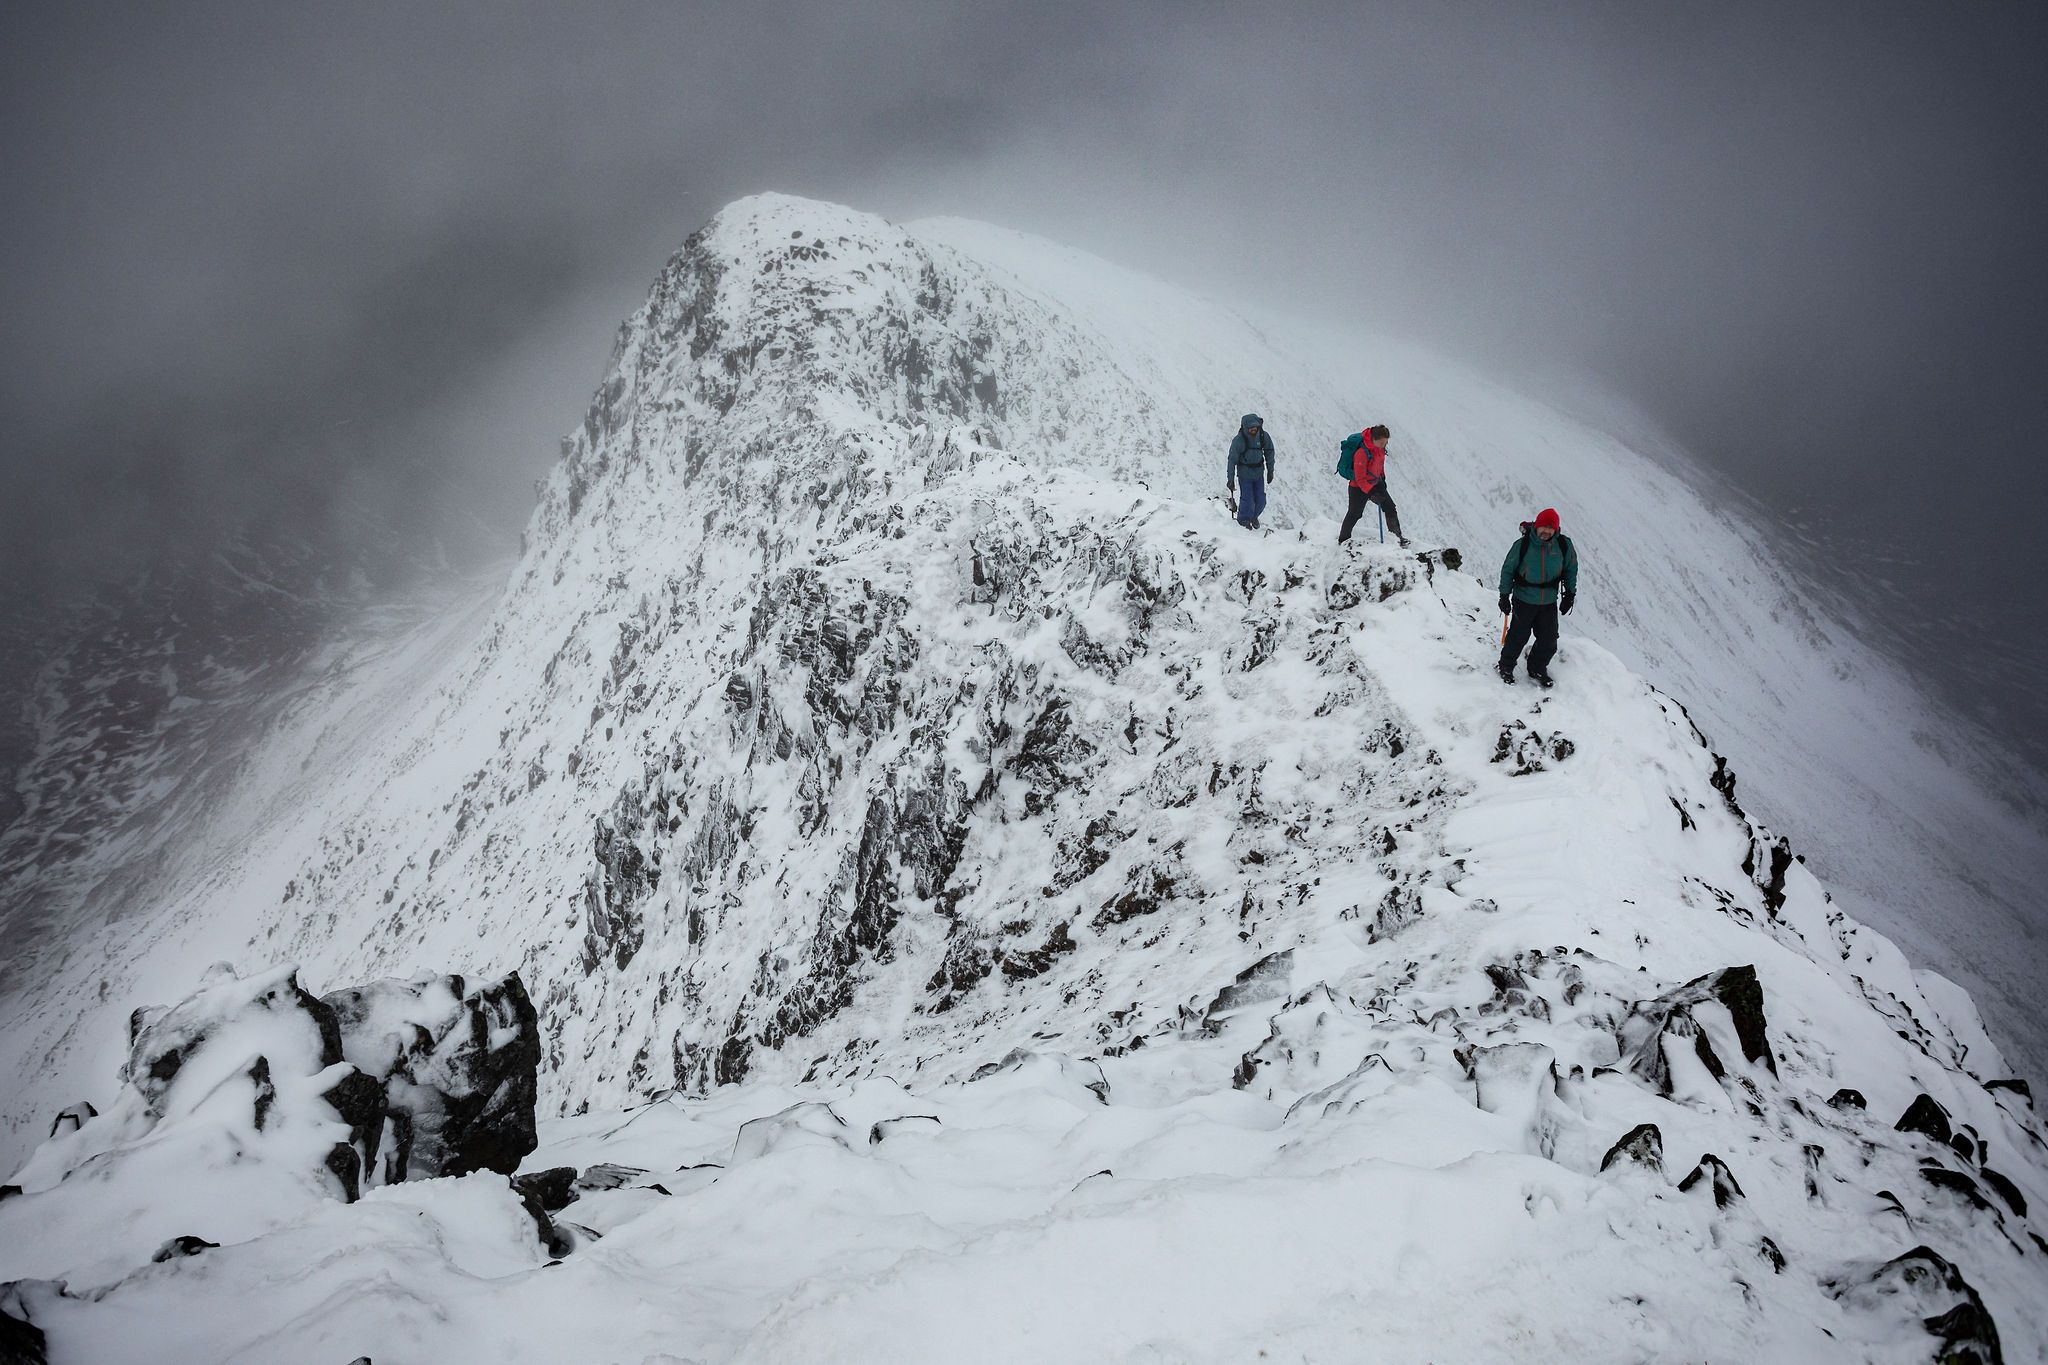 Winter hikers on snowy mountain ridge in the scottish highlands. Dramatic arctic misty scene the adventure photographers